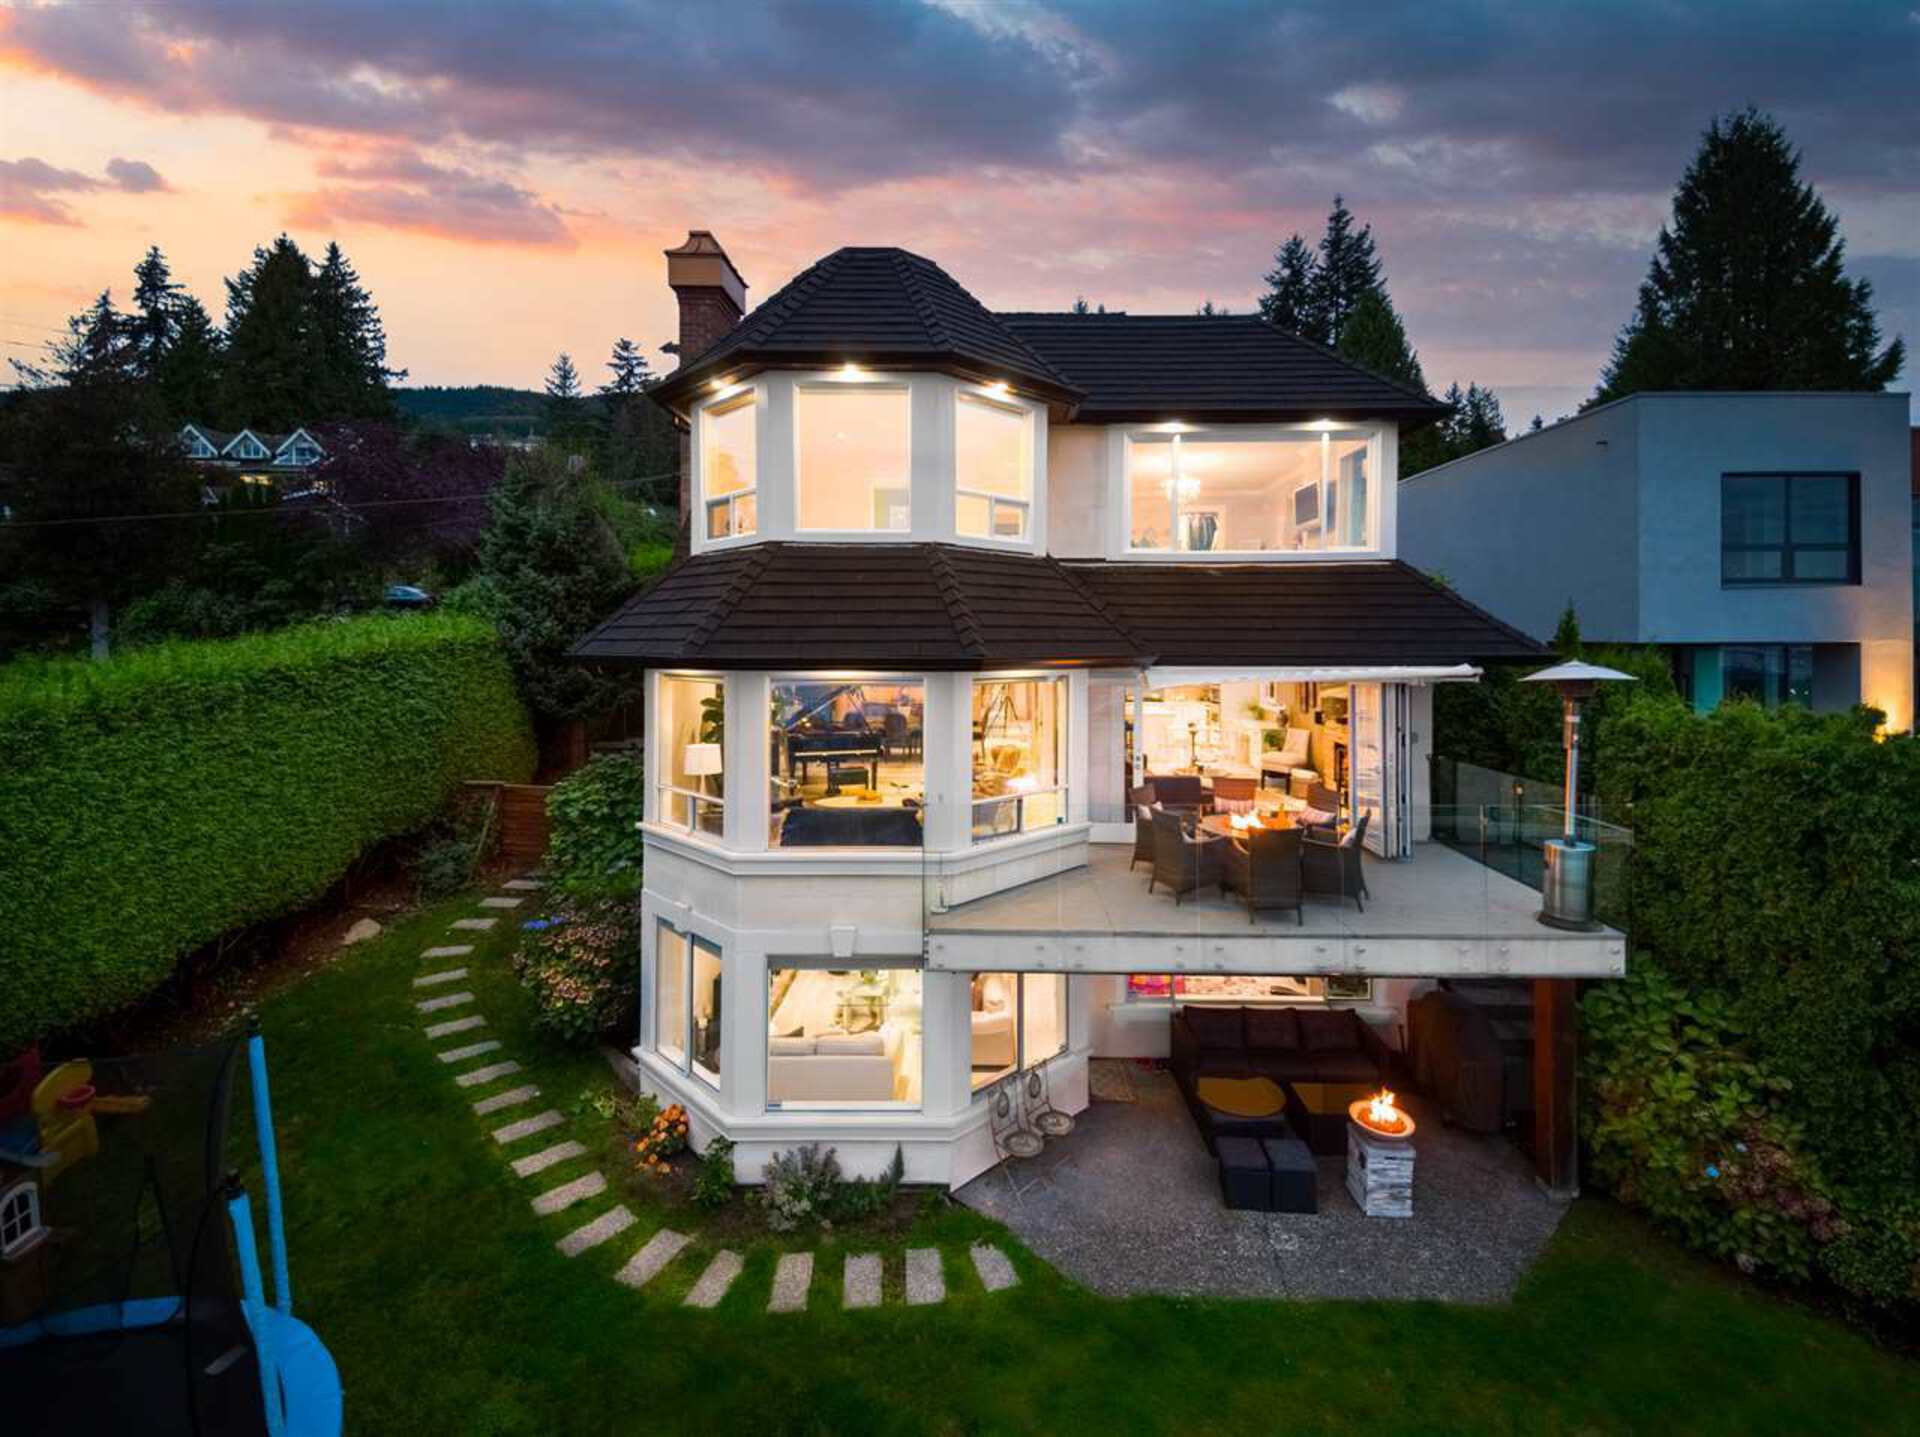 2198-rosebery-avenue-queens-west-vancouver-34 at 2198 Rosebery Avenue, Queens, West Vancouver